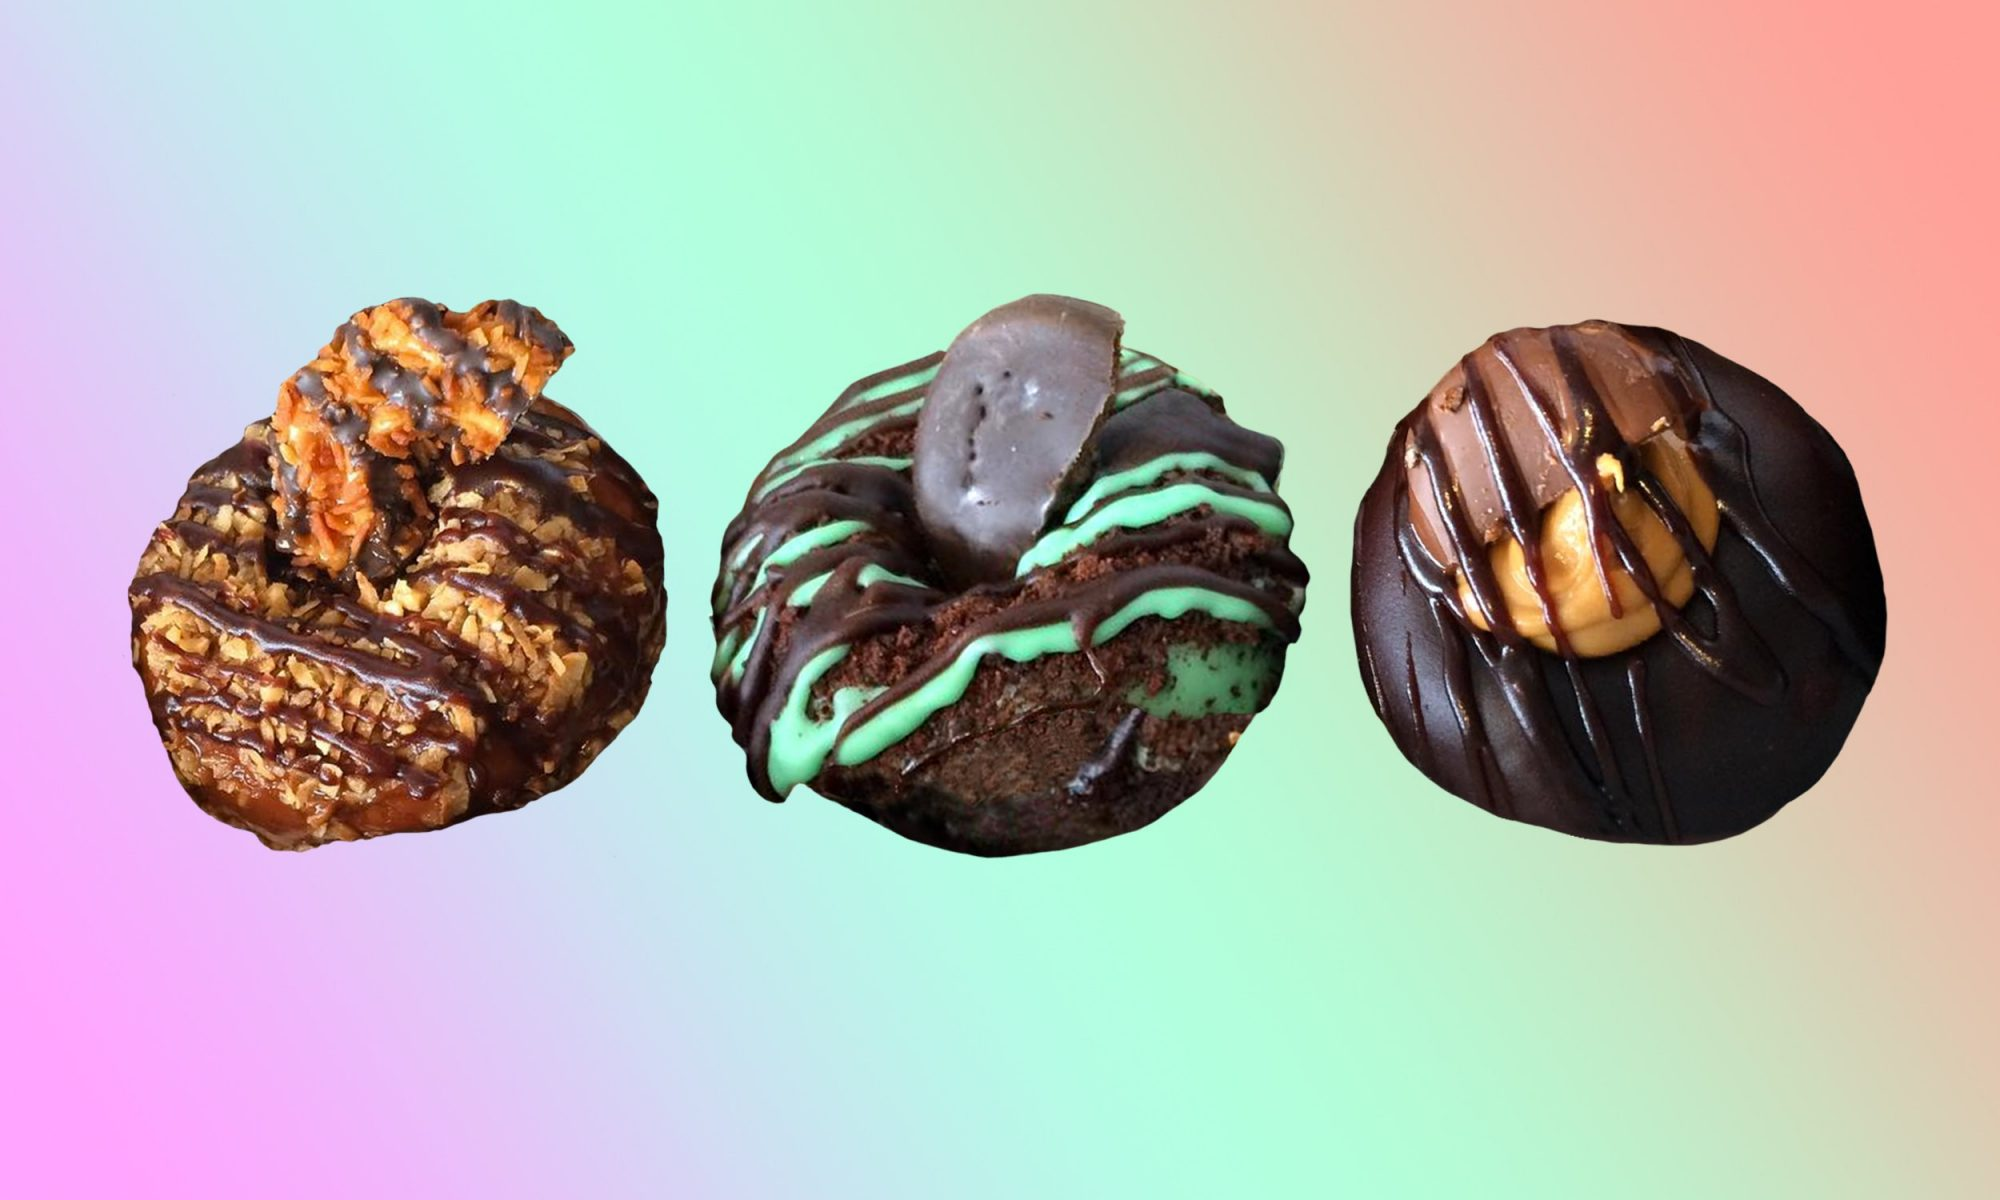 EC: These Girl Scout Cookie Doughnuts Sound Too Good to Be True